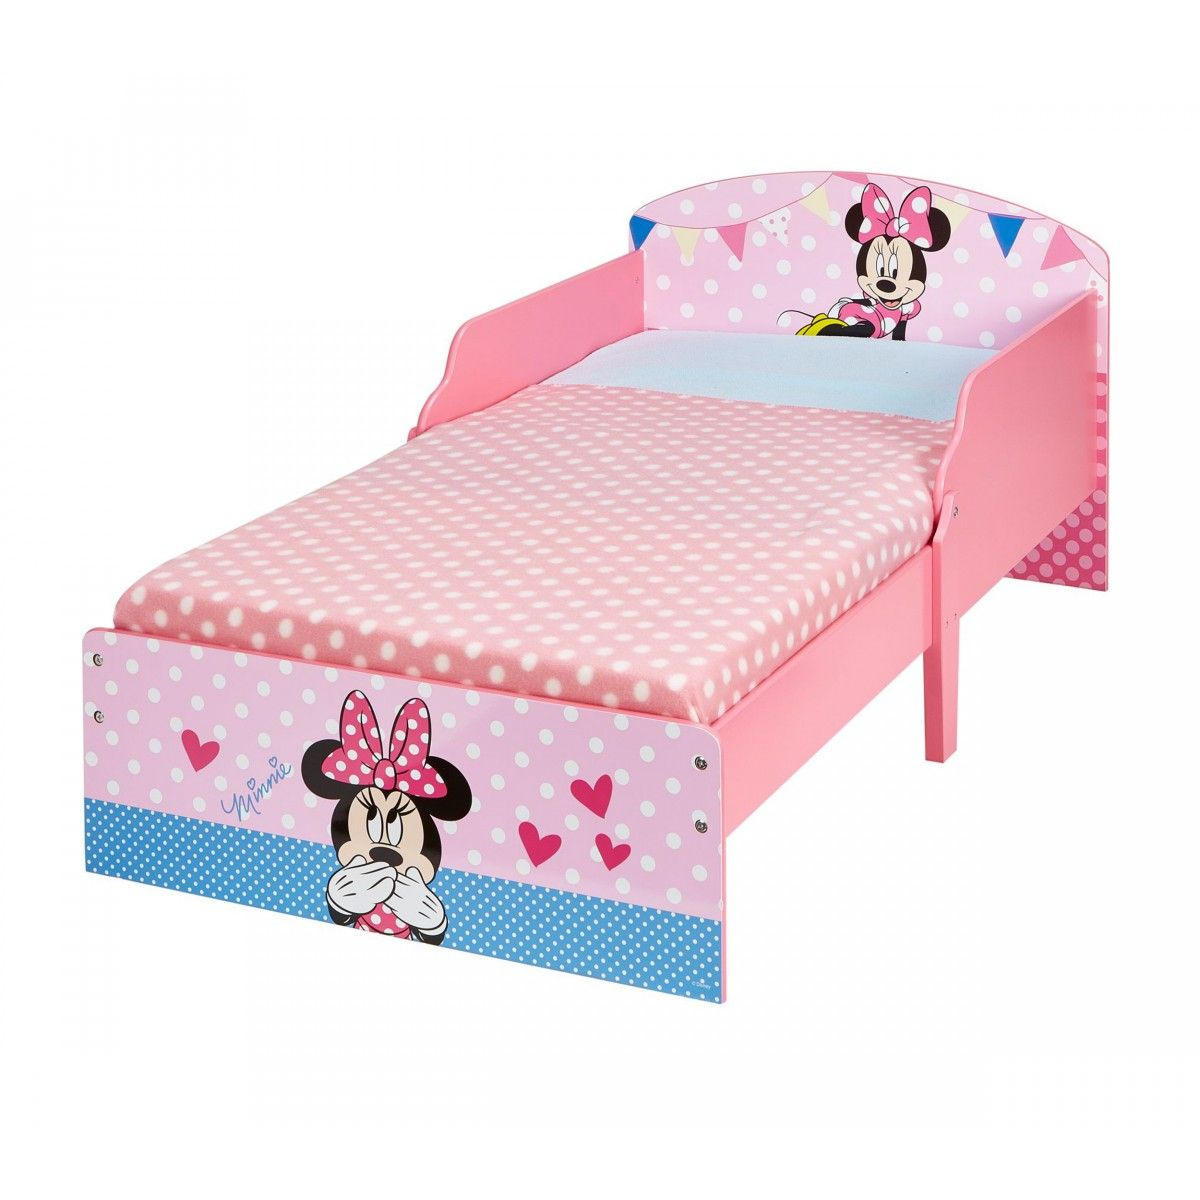 terre lit enfant minnie cosy 70x140 de nuit. Black Bedroom Furniture Sets. Home Design Ideas